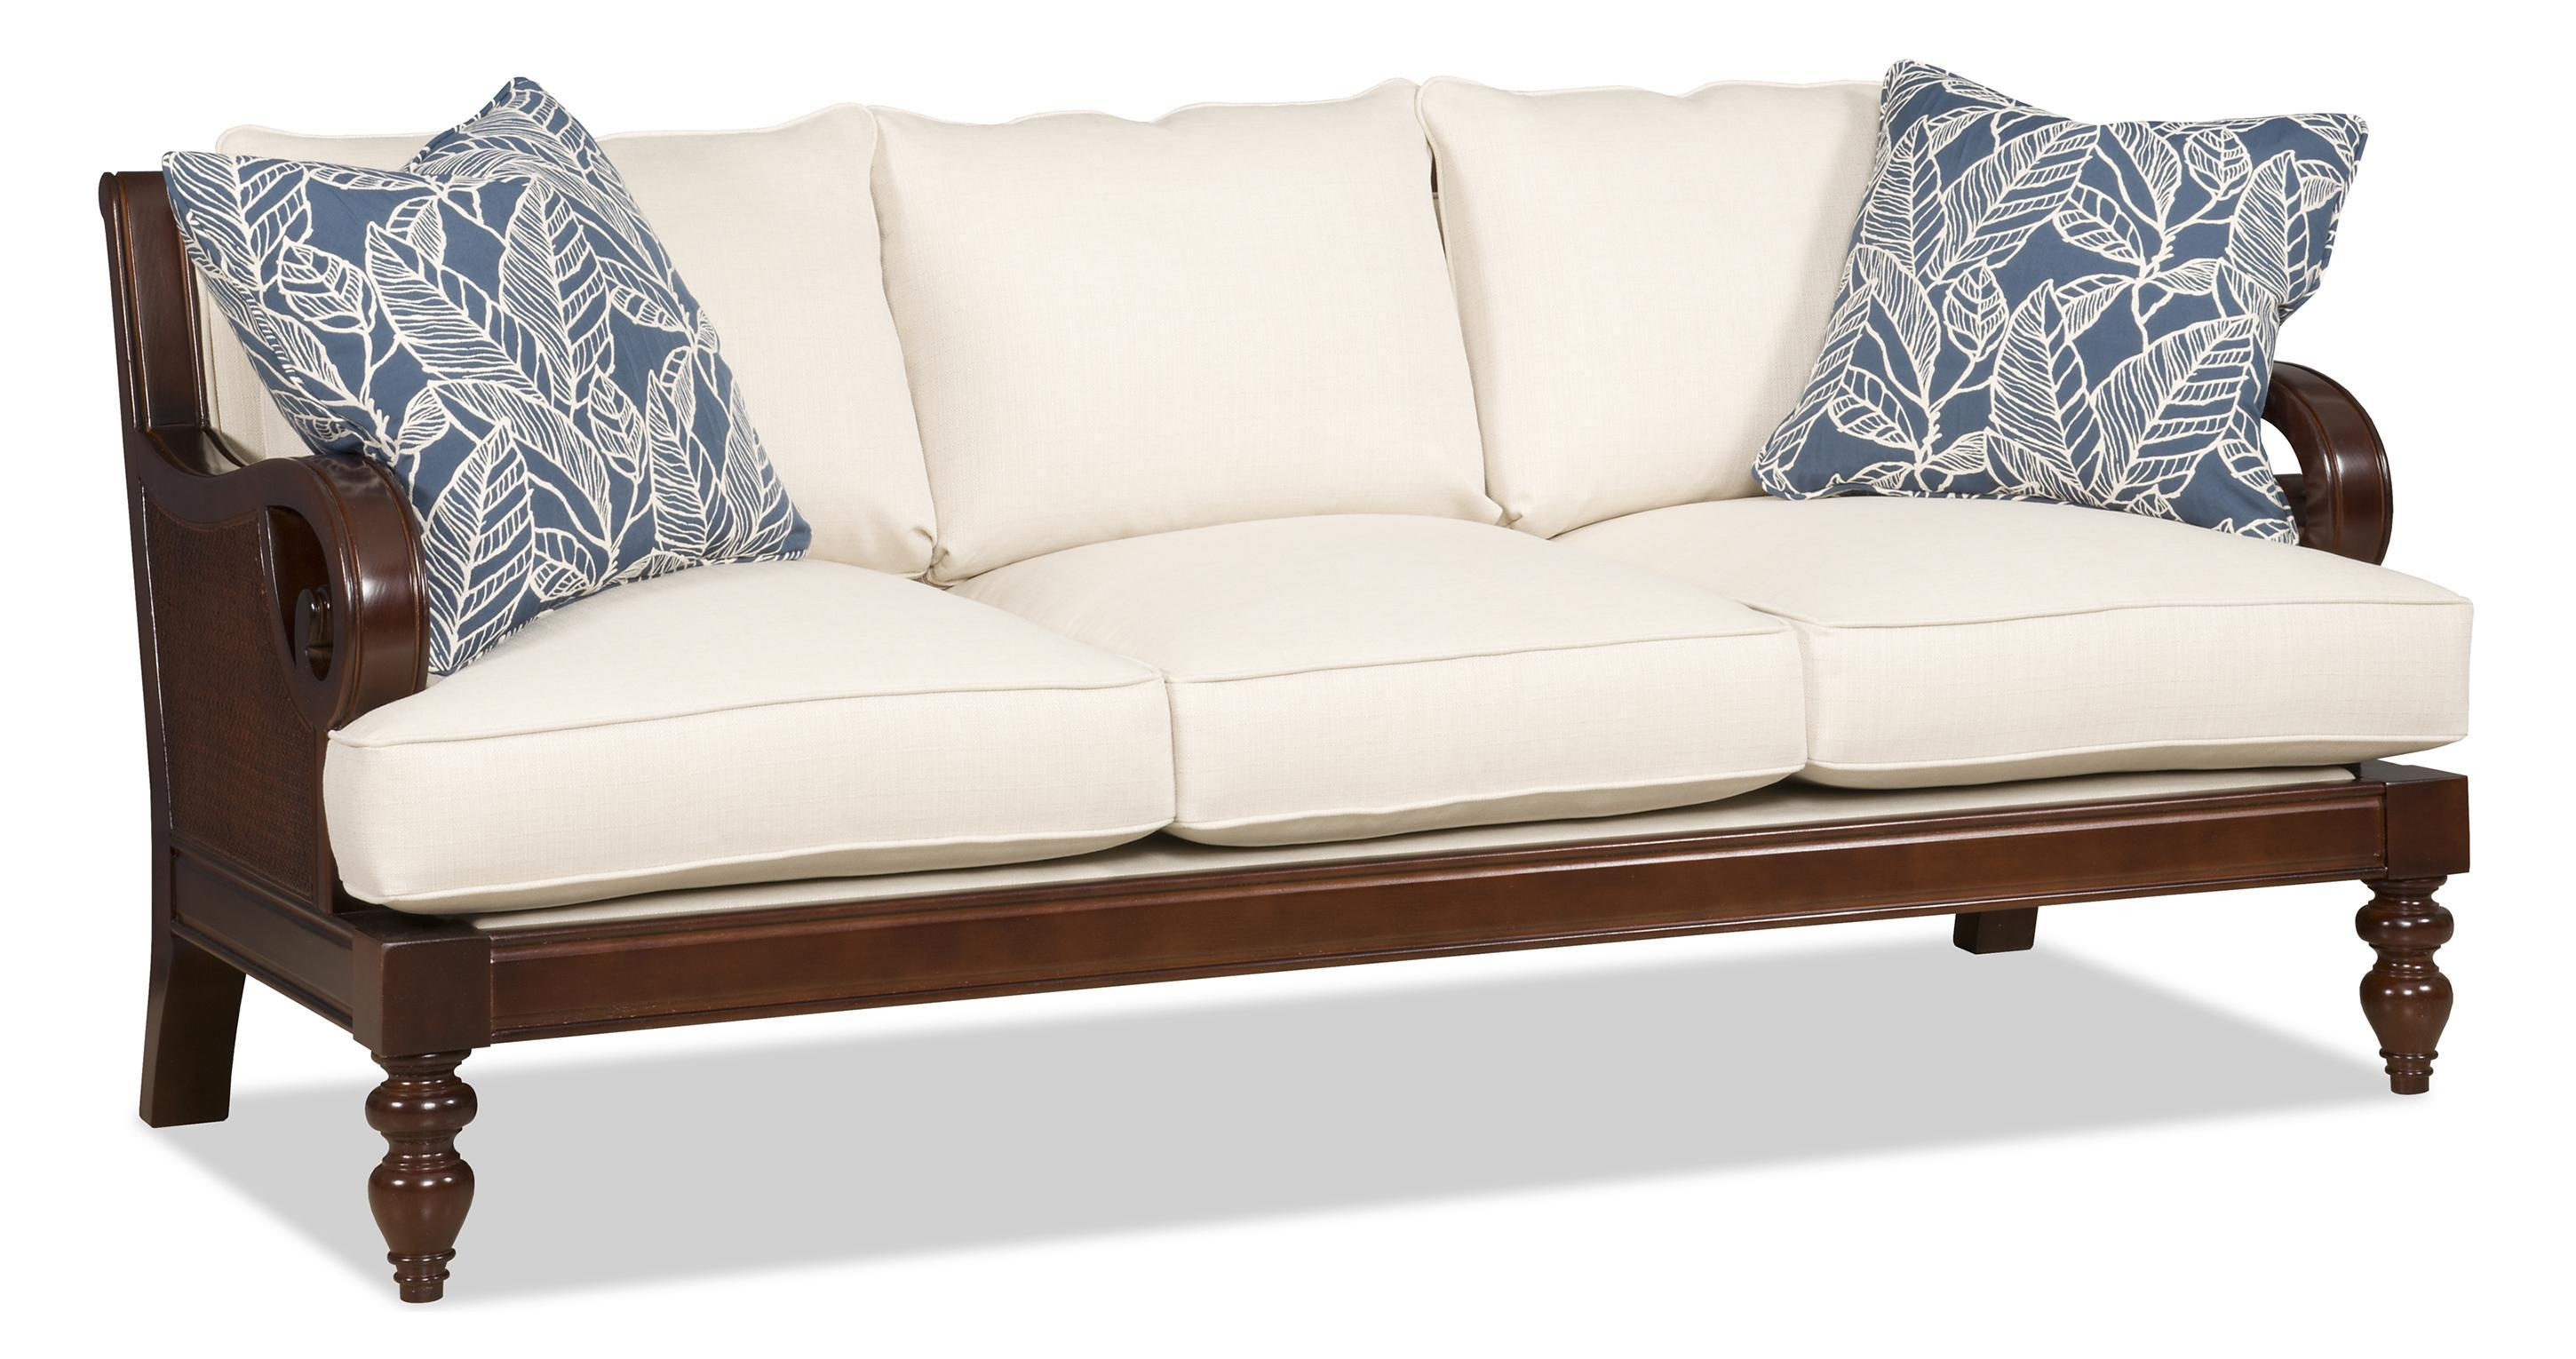 Sam Moore Tailynn Tropical Sofa With Exposed Wood And Scrolled Pertaining To Sam Moore Sofas (View 17 of 20)